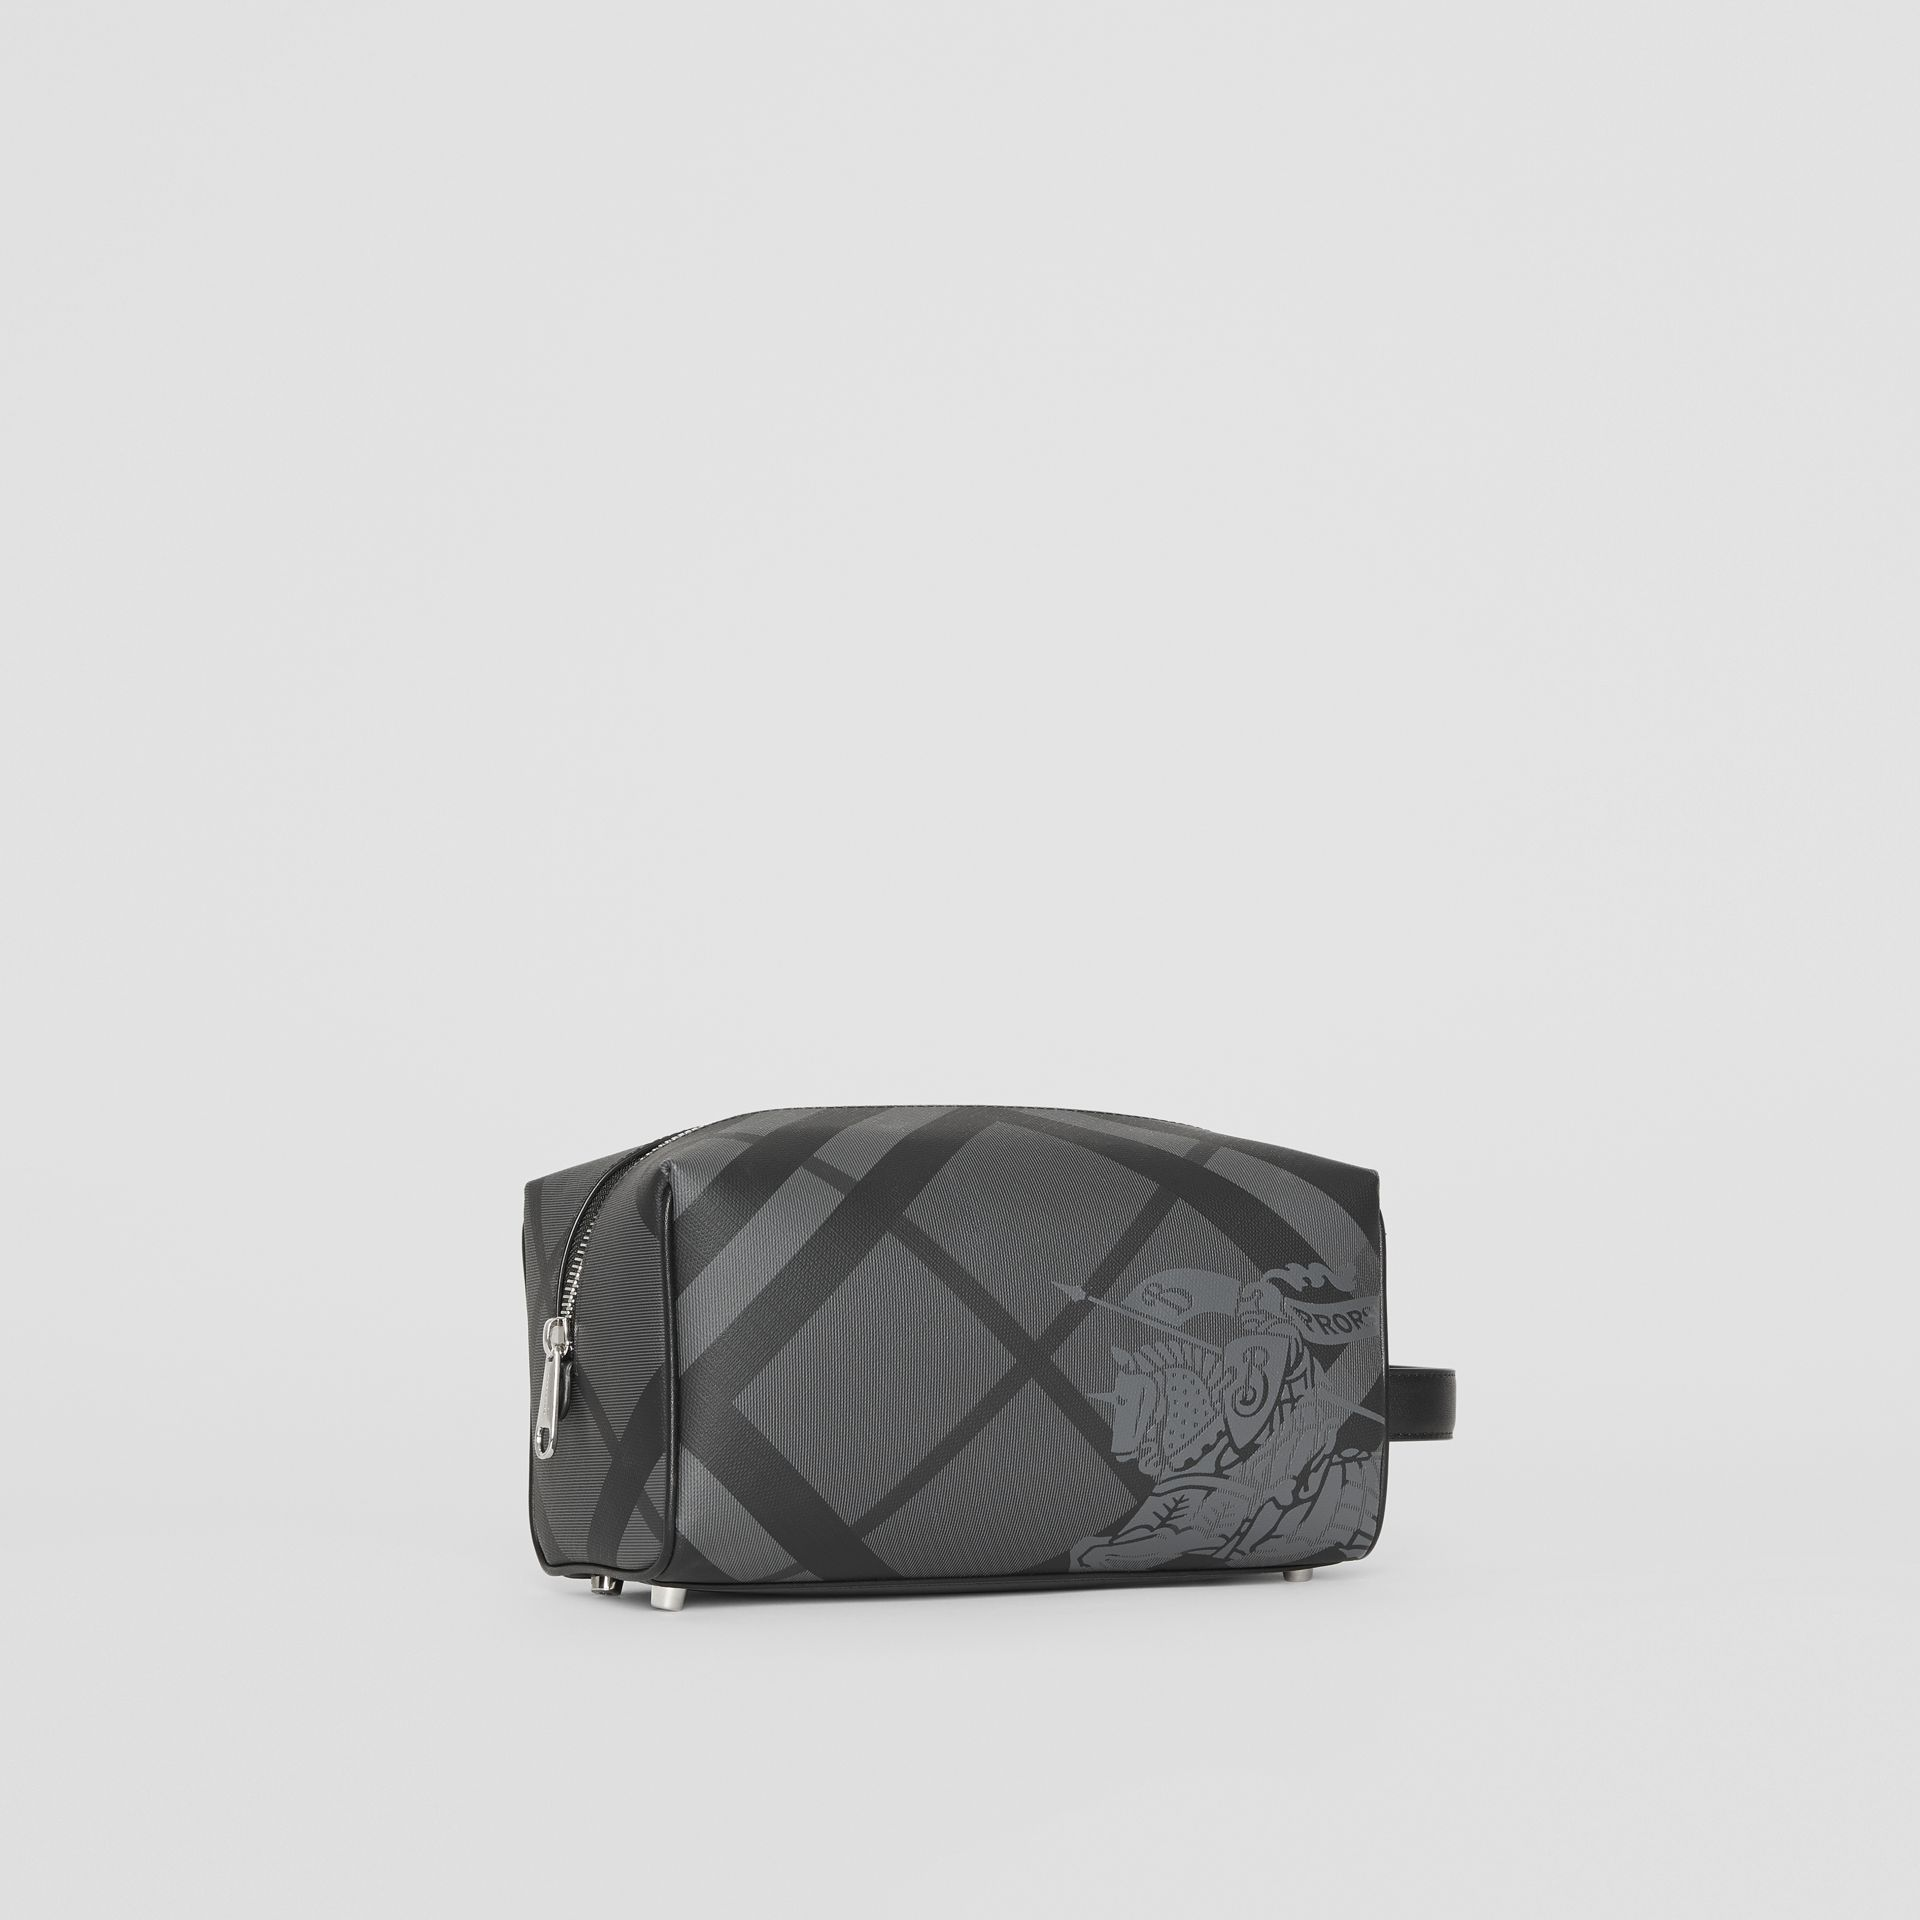 EKD London Check and Leather Pouch in Charcoal/black - Men | Burberry Singapore - gallery image 6